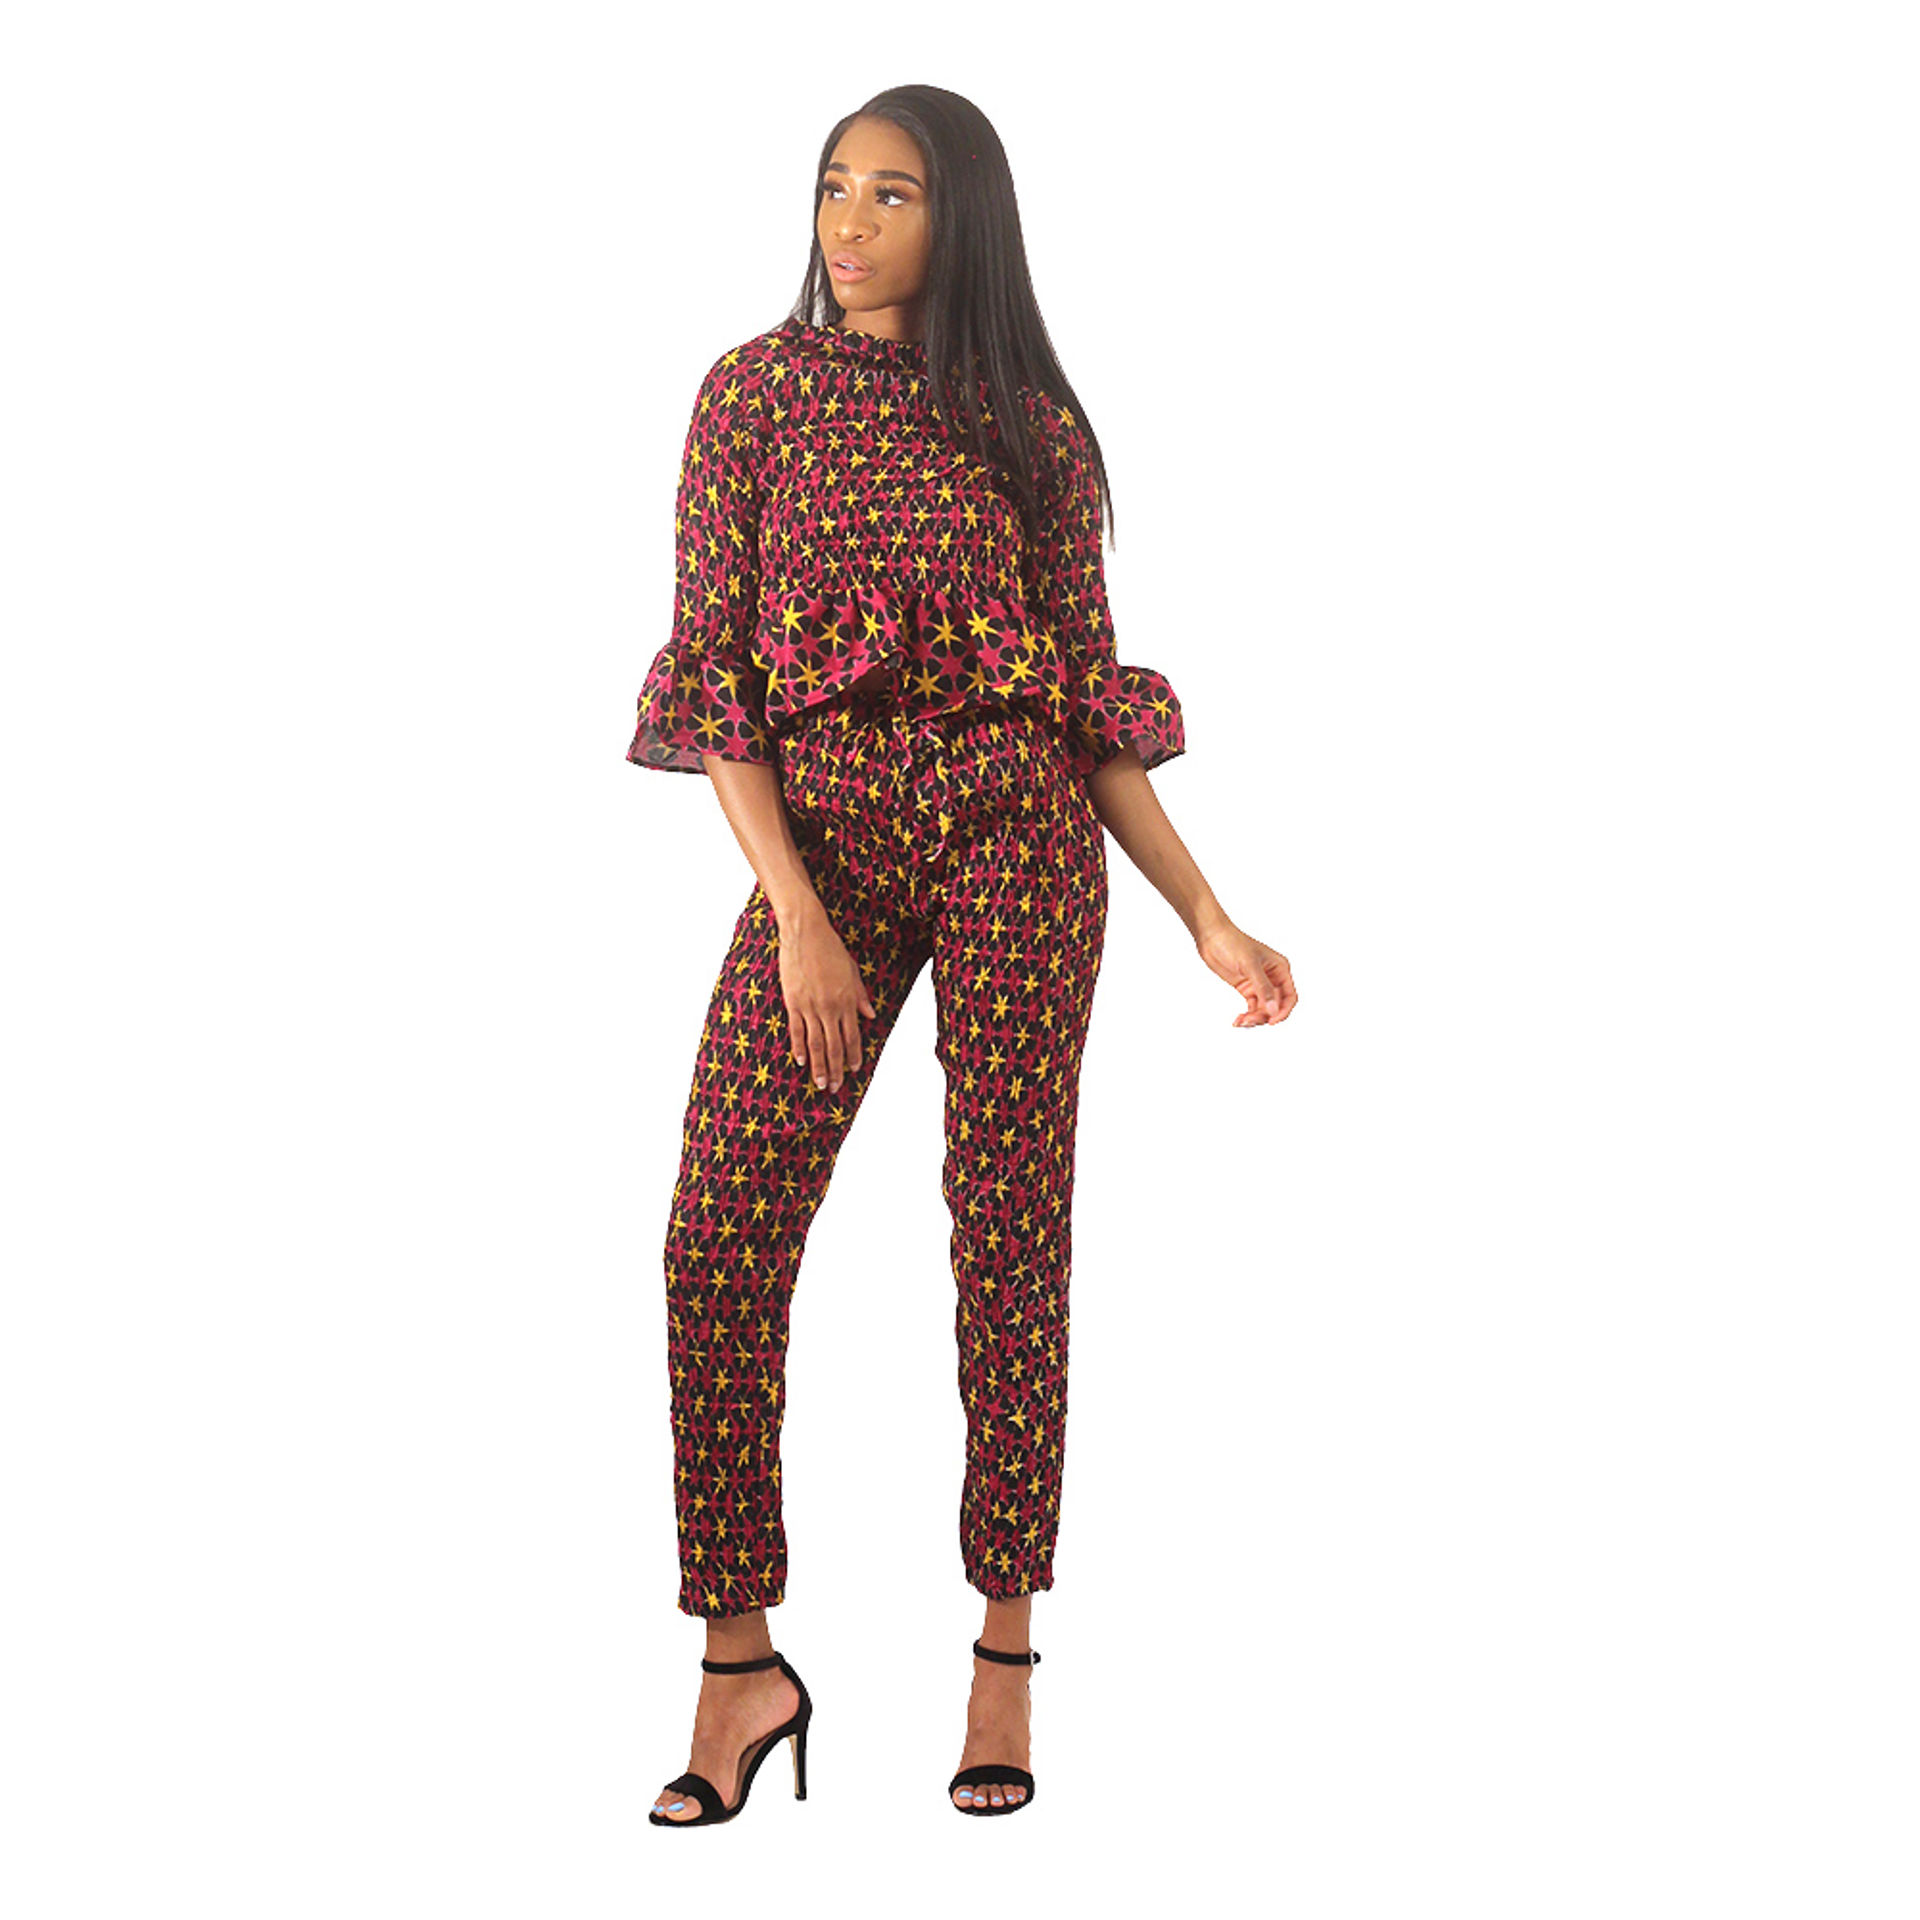 Picture of African Print Pant Set: Burgundy/Black